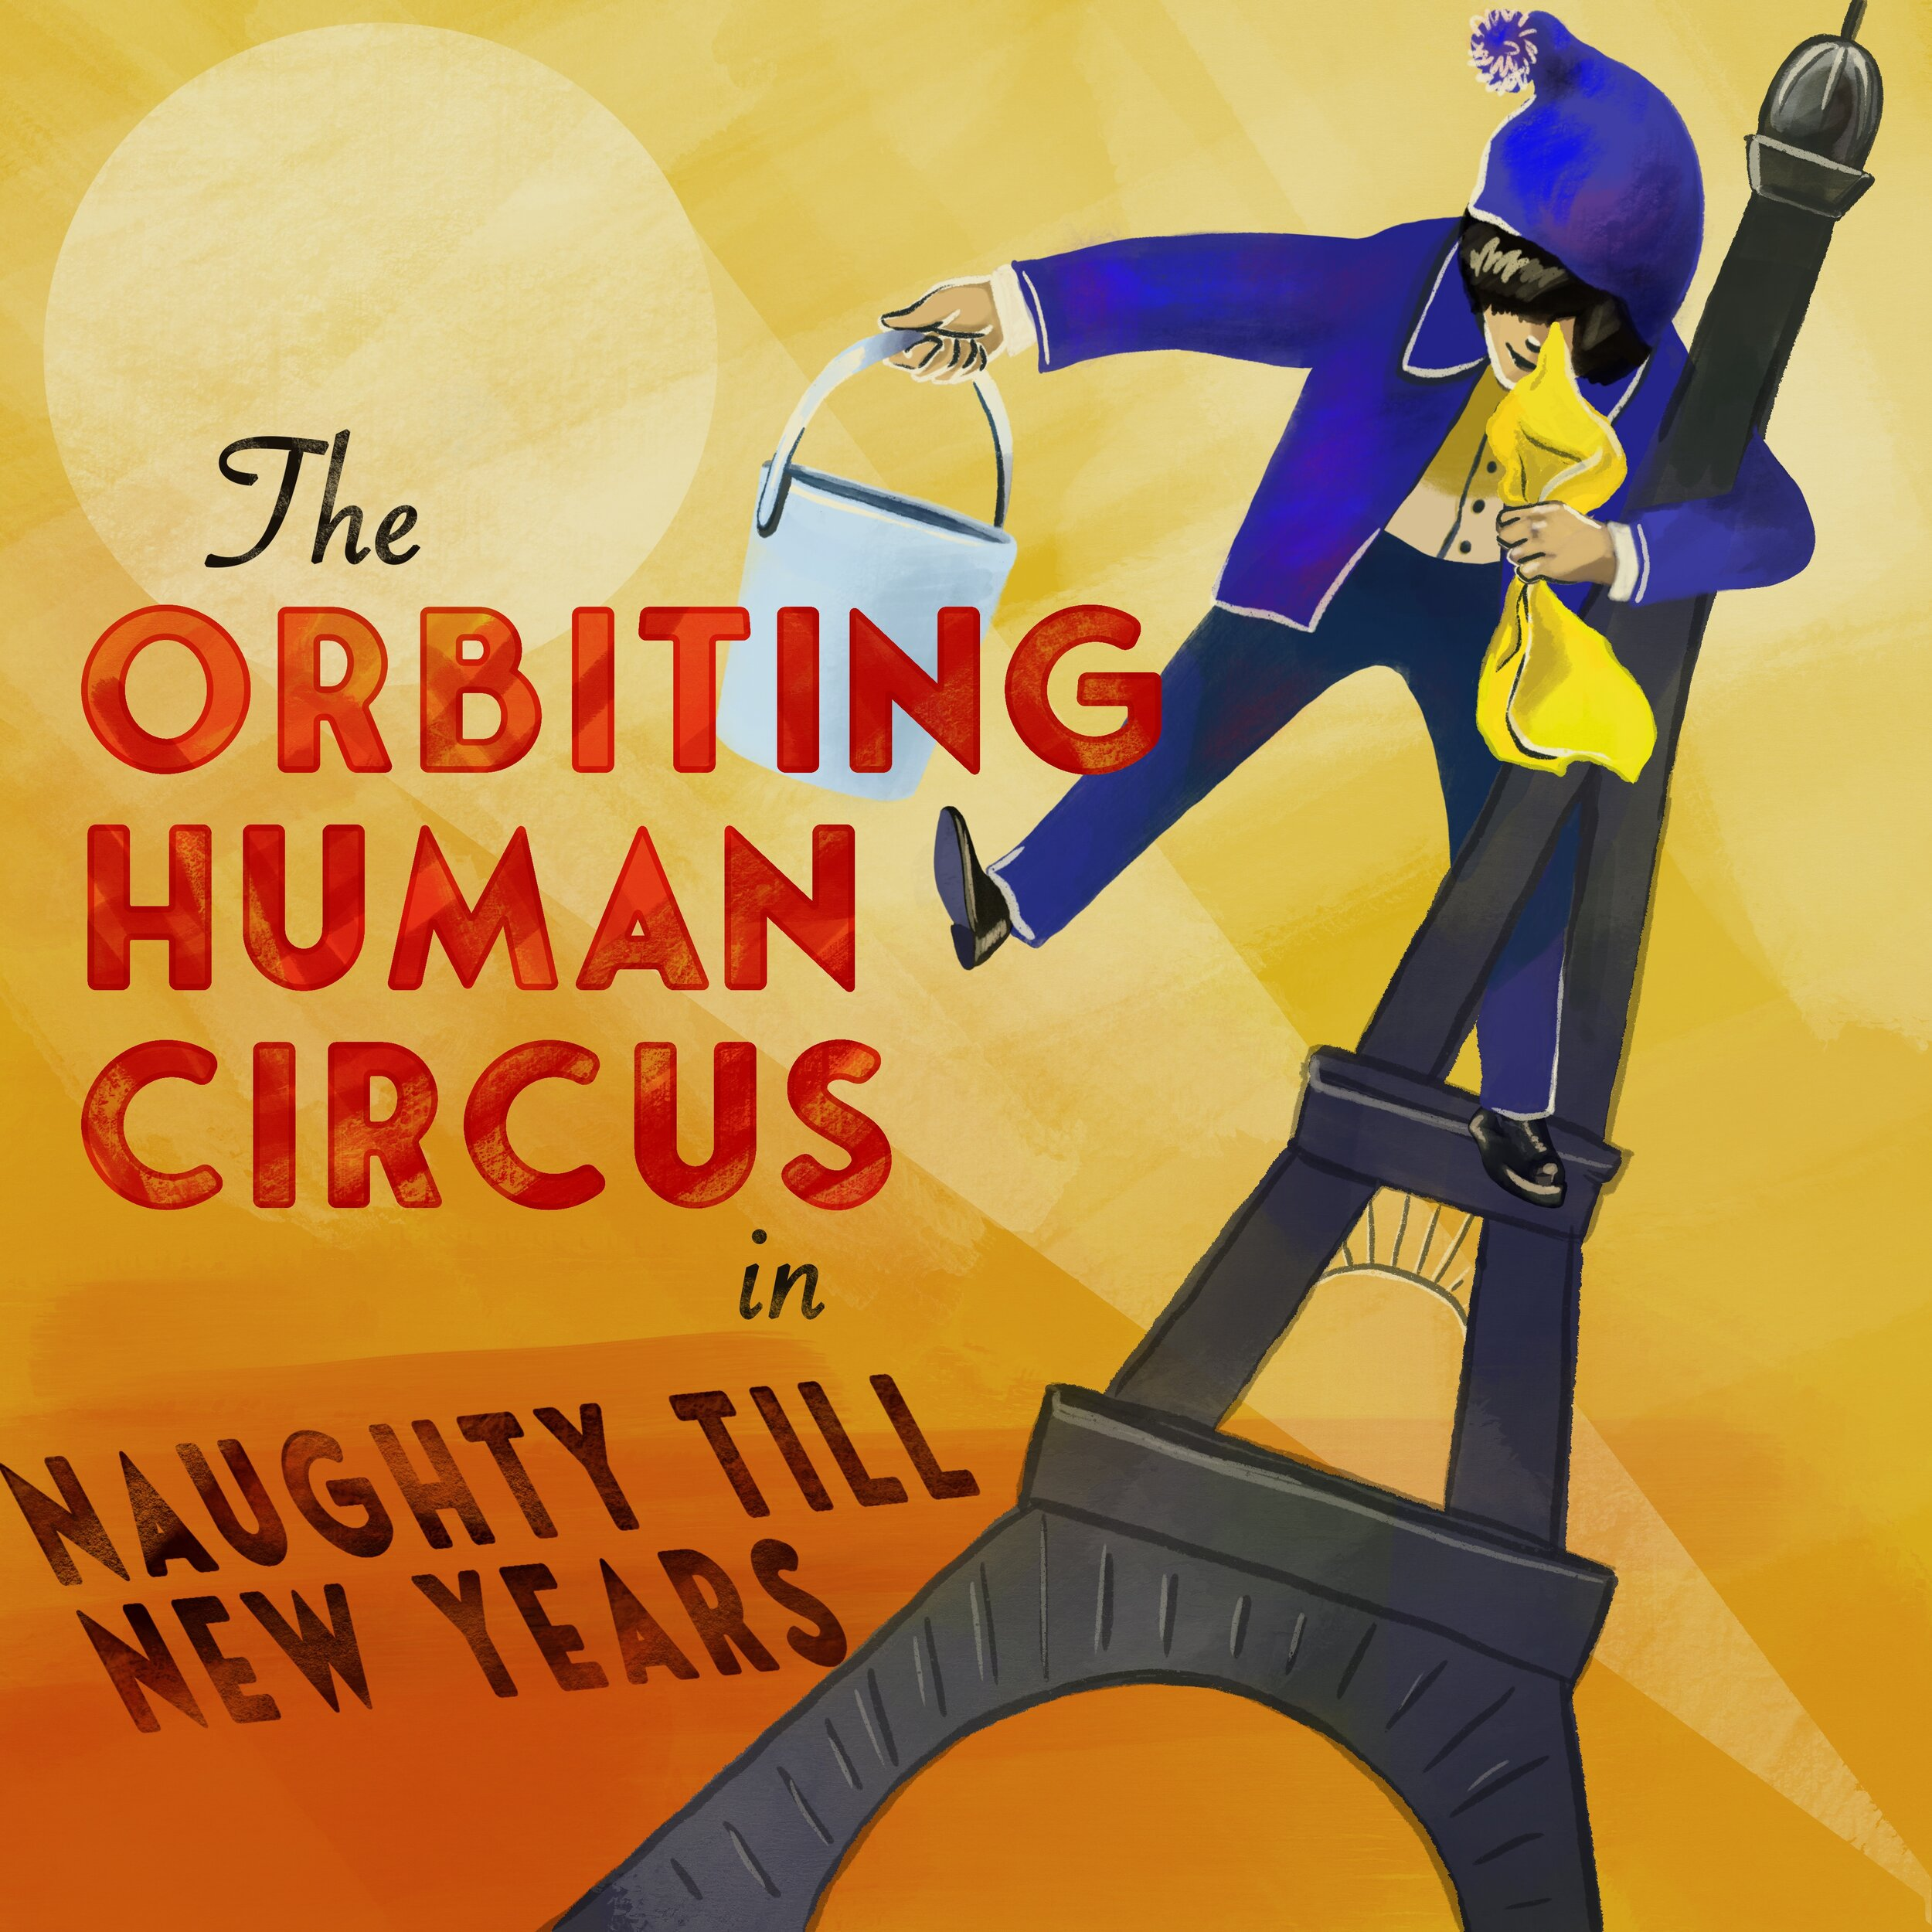 An all-new adventure from The Orbiting Human Circus. Beginning November 6, 2019. -